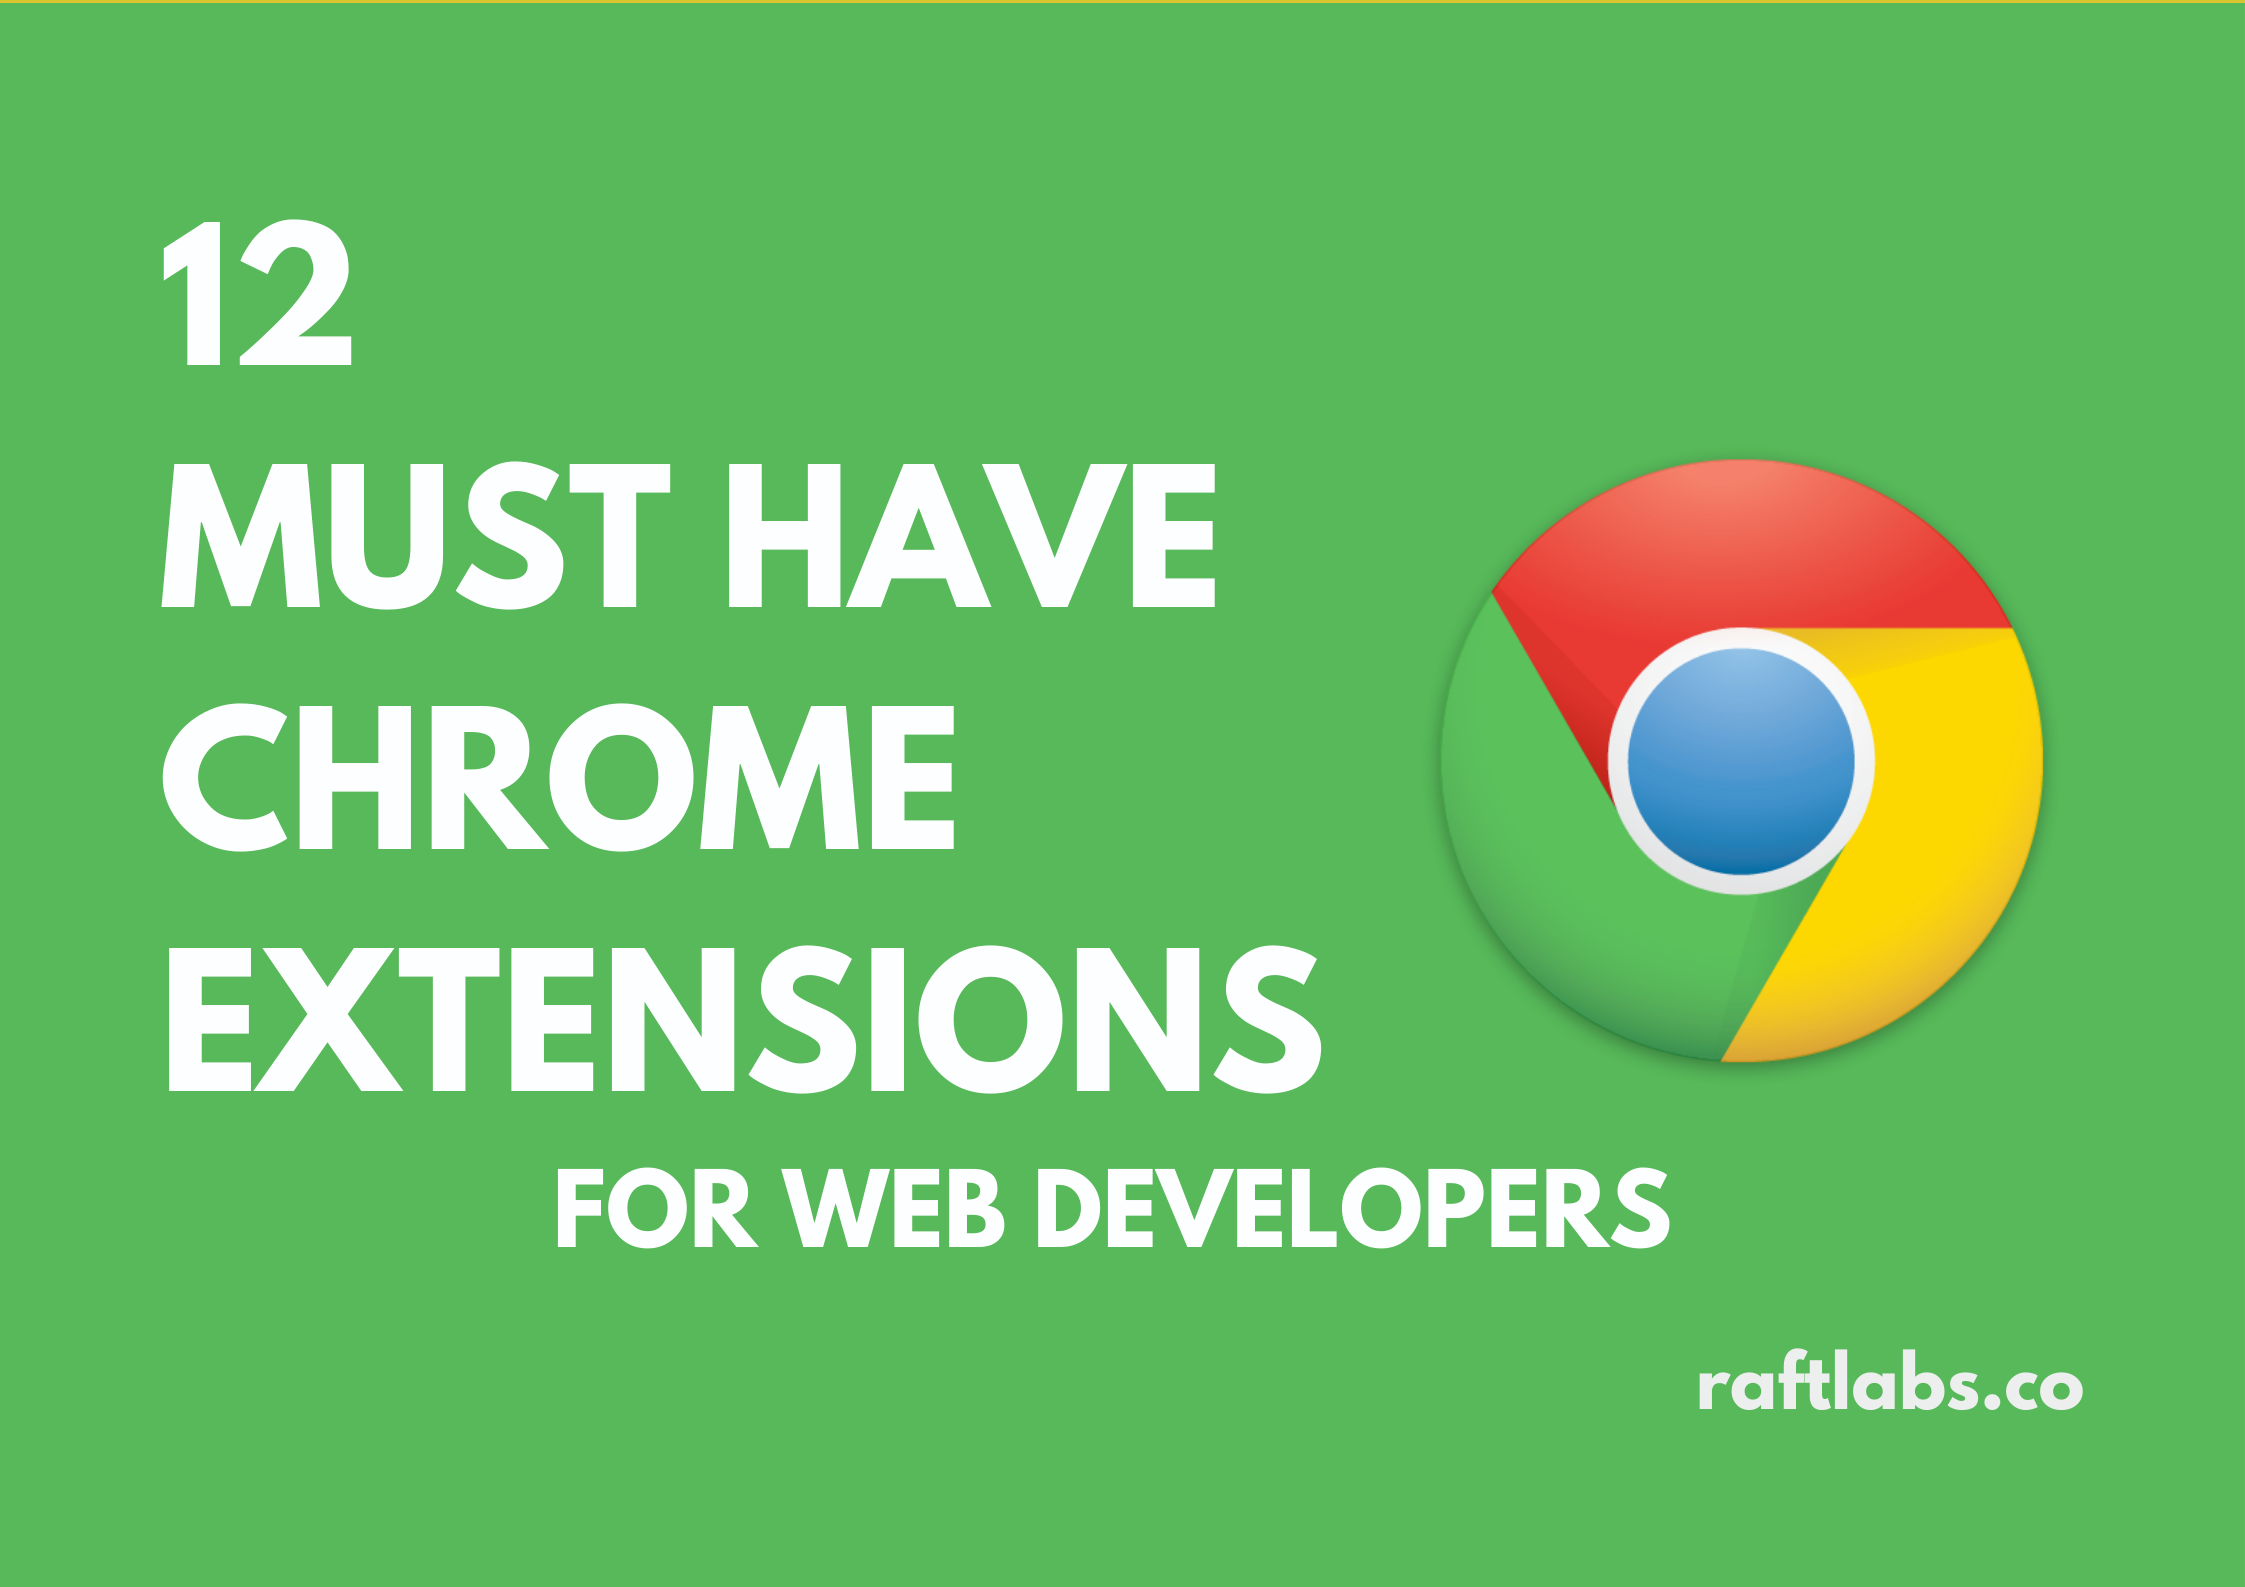 12 Must Have Chrome Extensions For Web Developers with Google Chrome Logo - raftlabs.co